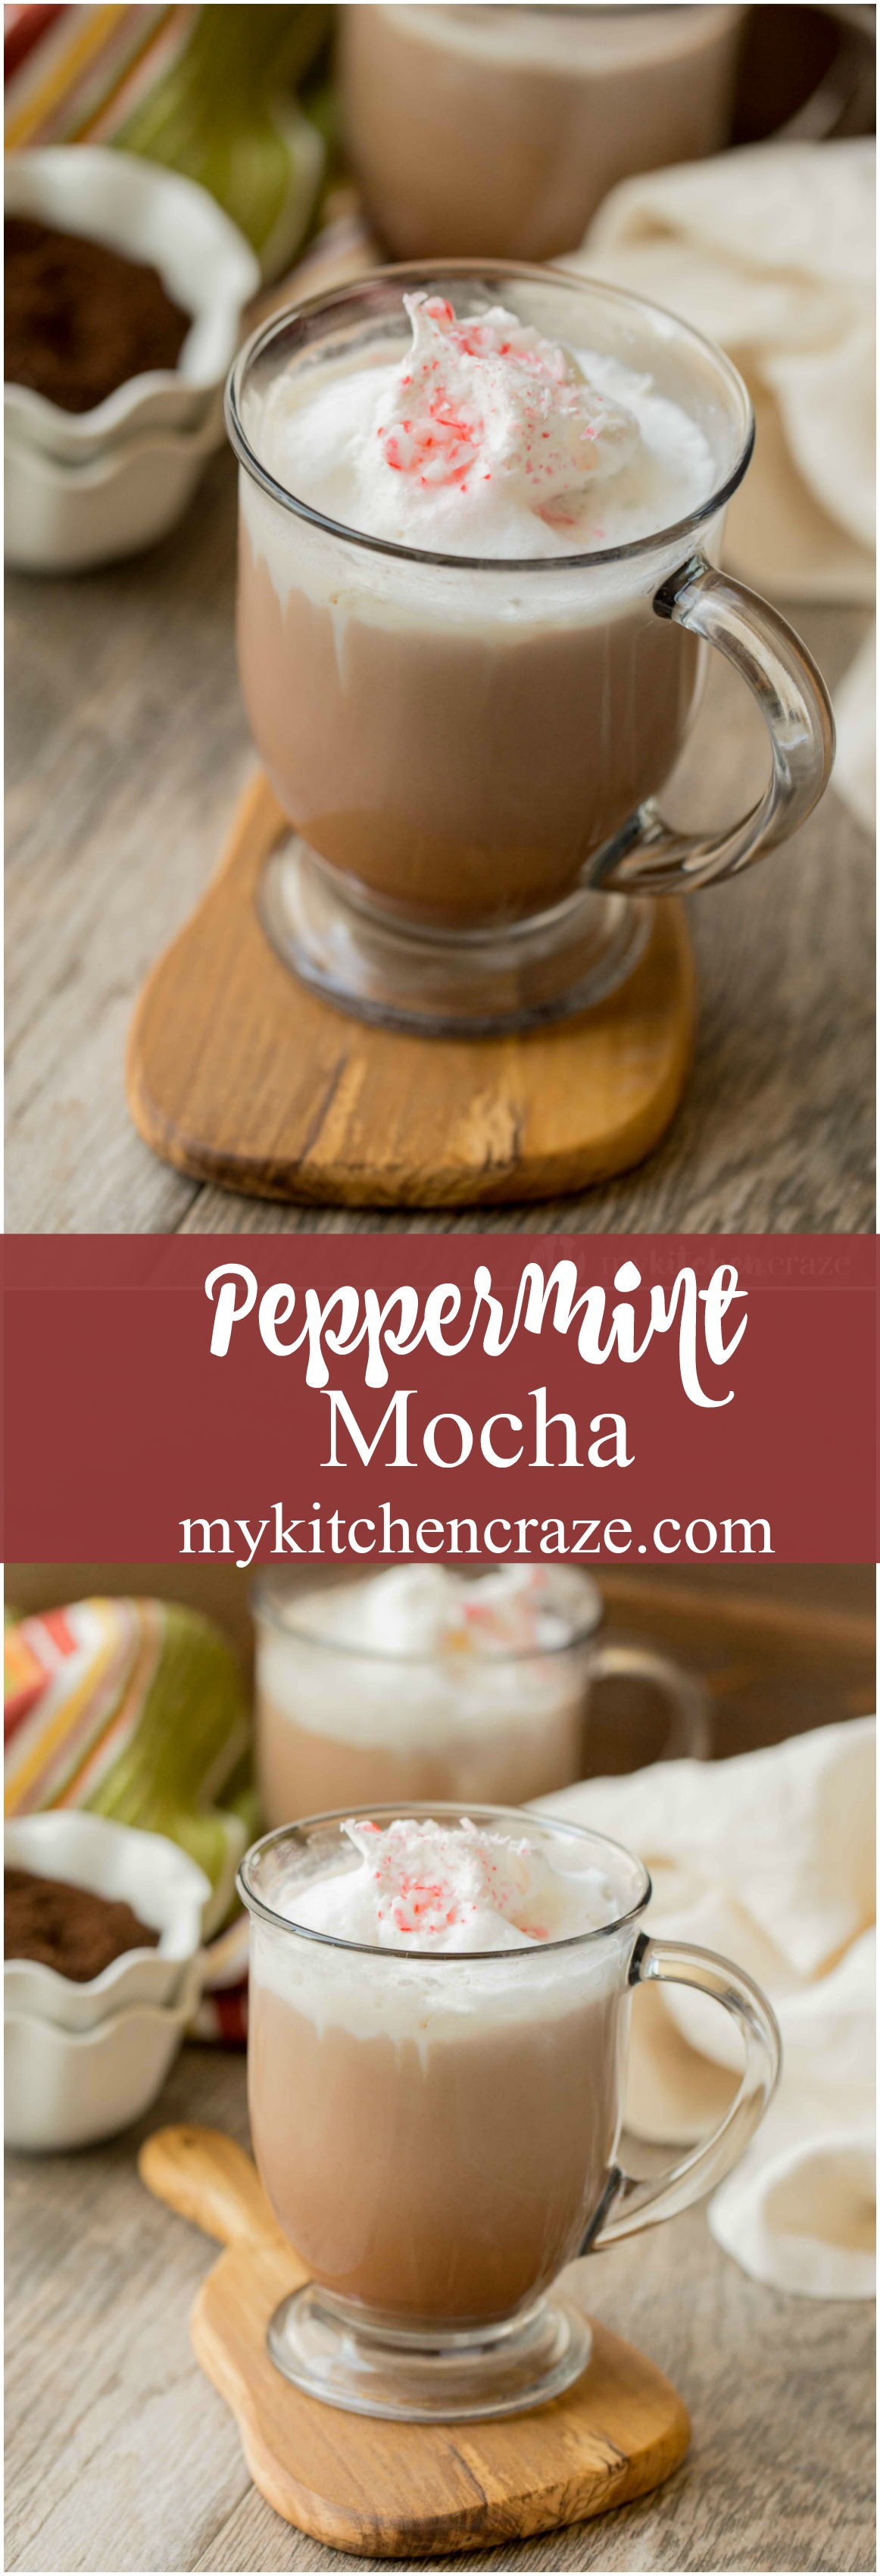 Peppermint Mocha is perfect for those chilly nights. Only a handful of ingredients and you can enjoy this delicious drink in the comfort of your own home!